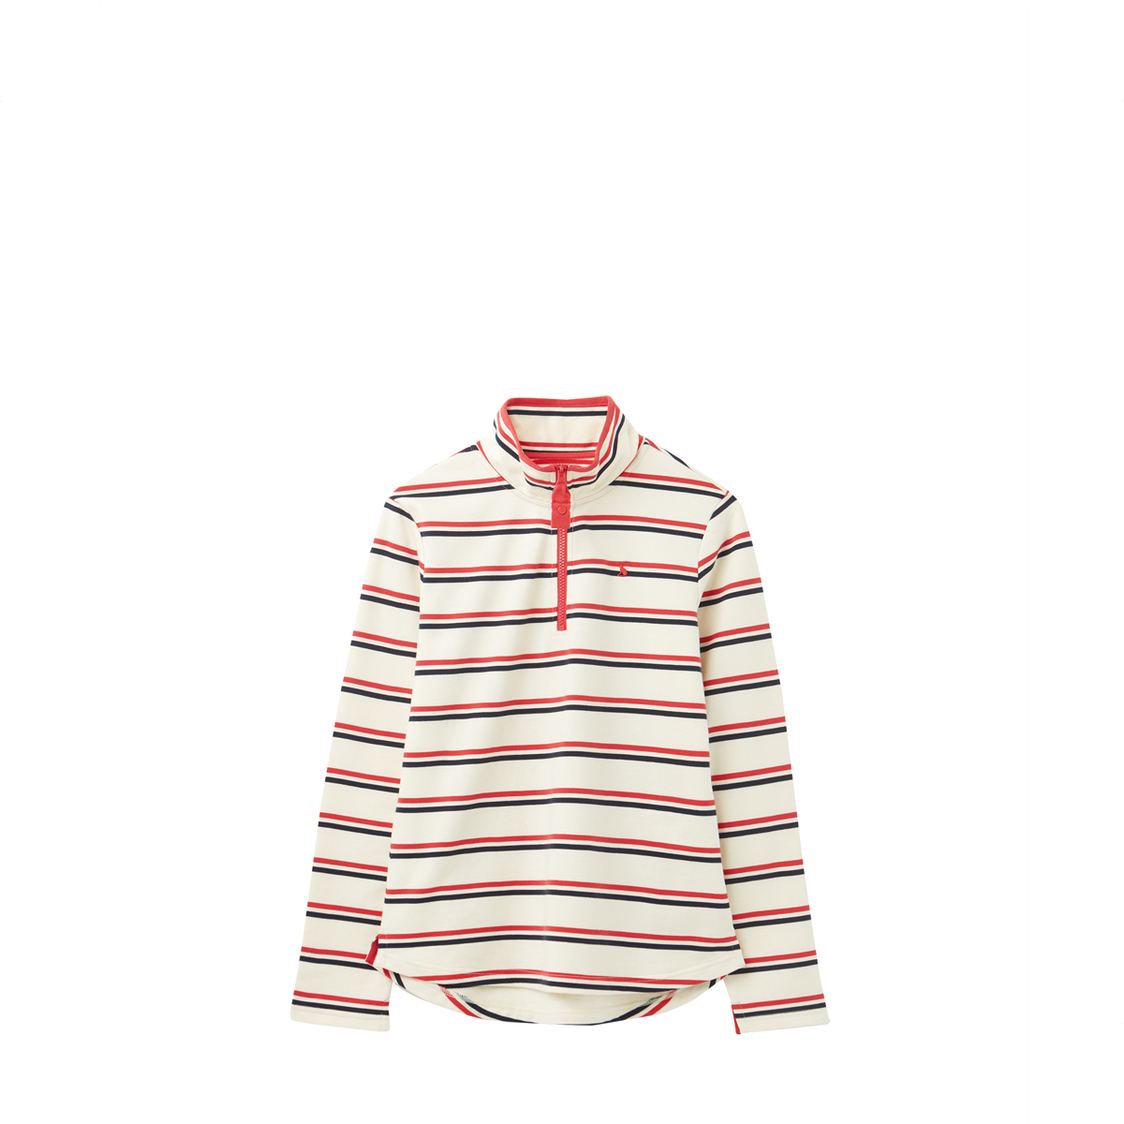 Tom Joule Fairdale Sweatshirt With Zip Neck Cream Red Blue Stripe